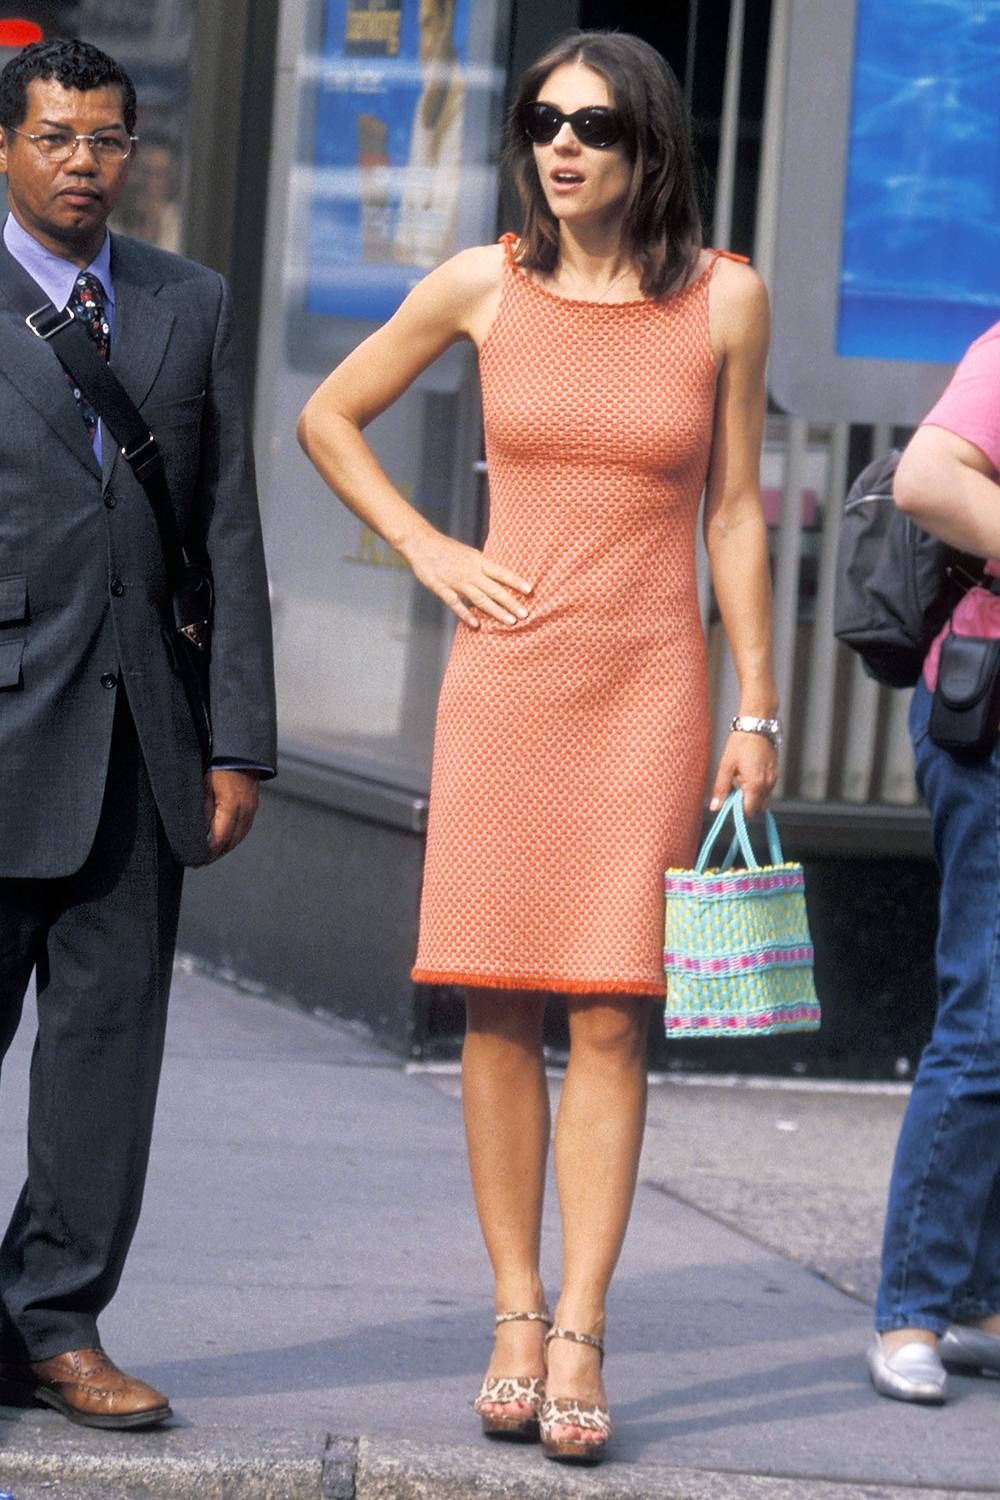 Liz Hurley Circa 1990 Is So On Trend For Now In 2020 Orange Mini Dress Hurley Style 90s Fashion Outfits